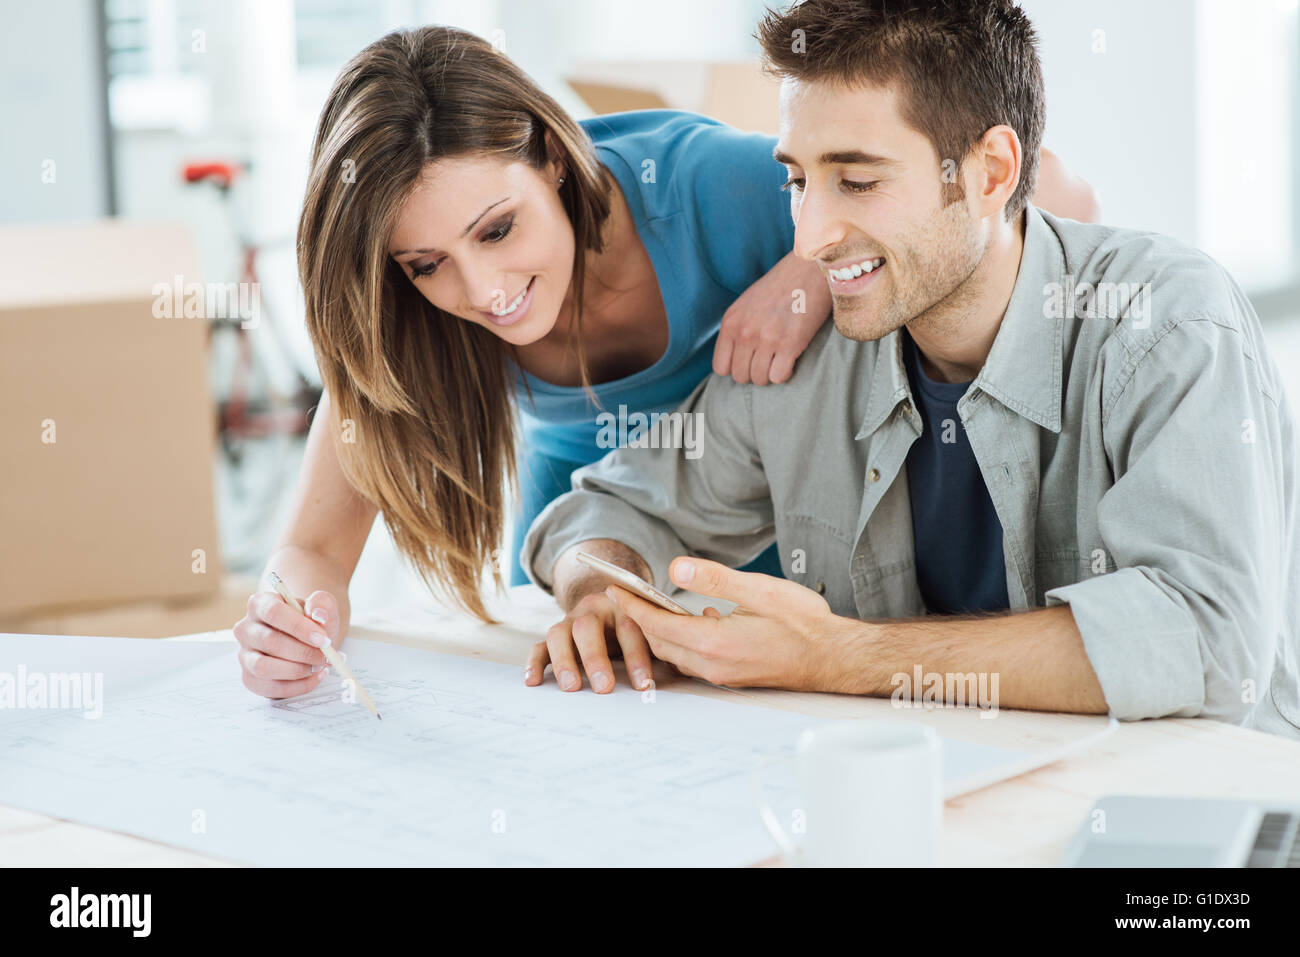 Young couple planning their new dream house, he is sitting at desk and she is drawing on a project, carton boxes - Stock Image